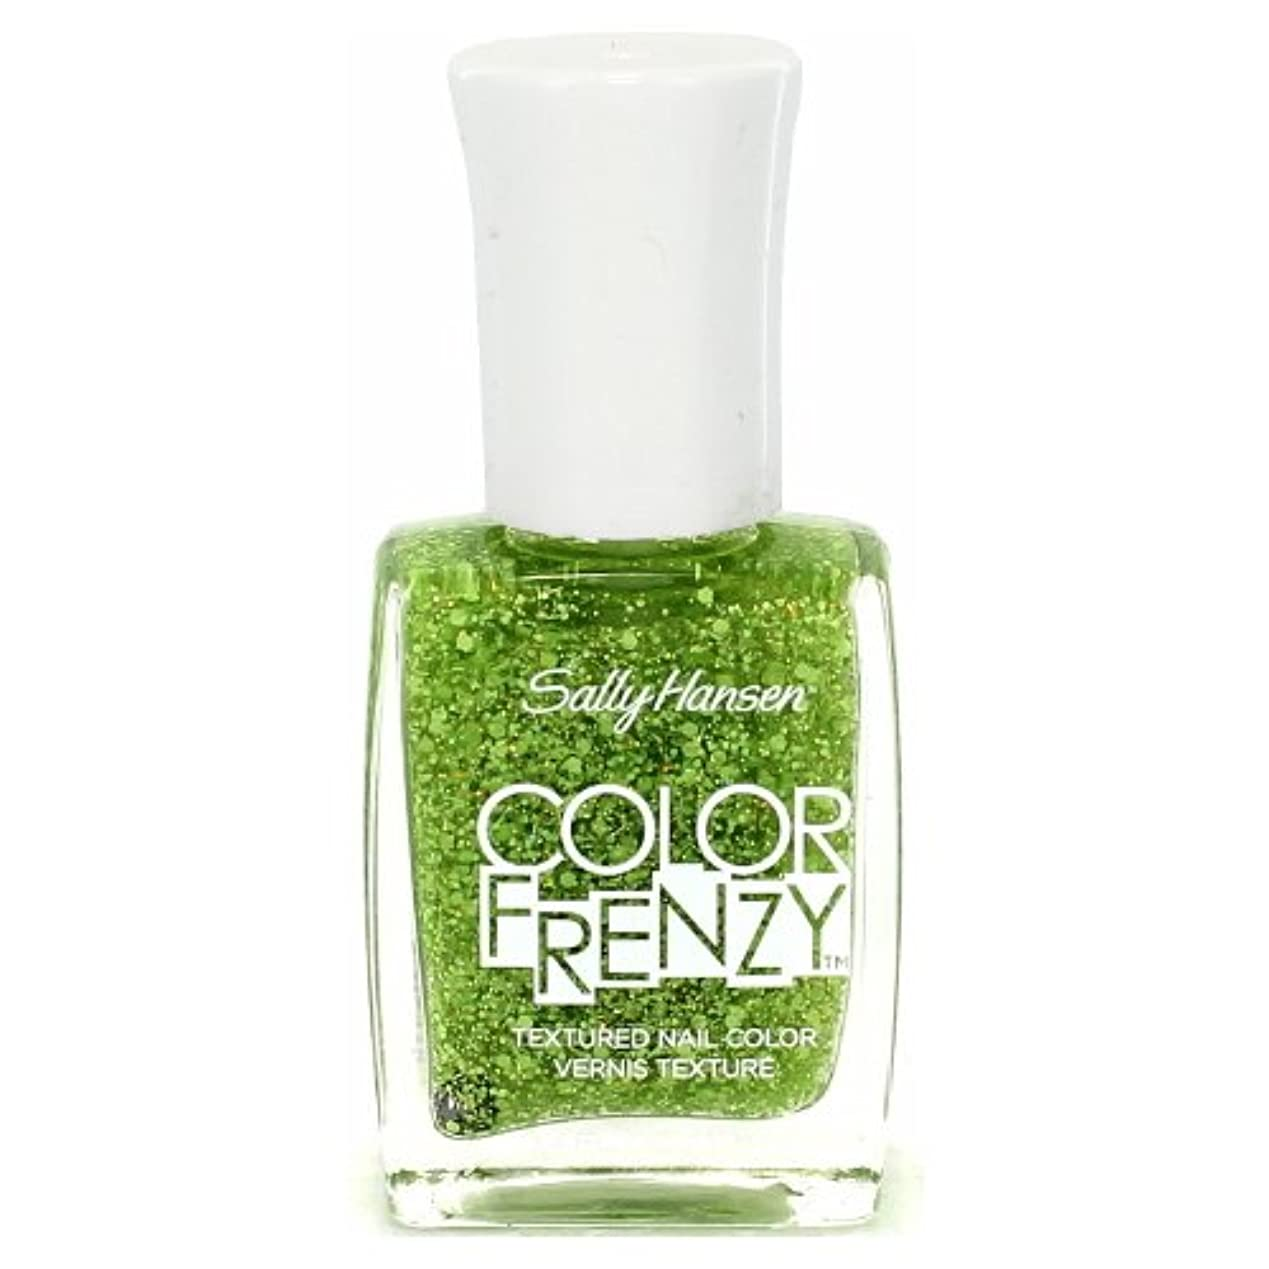 シガレット肺炎神経衰弱(6 Pack) SALLY HANSEN Color Frenzy Textured Nail Color - Green Machine (並行輸入品)